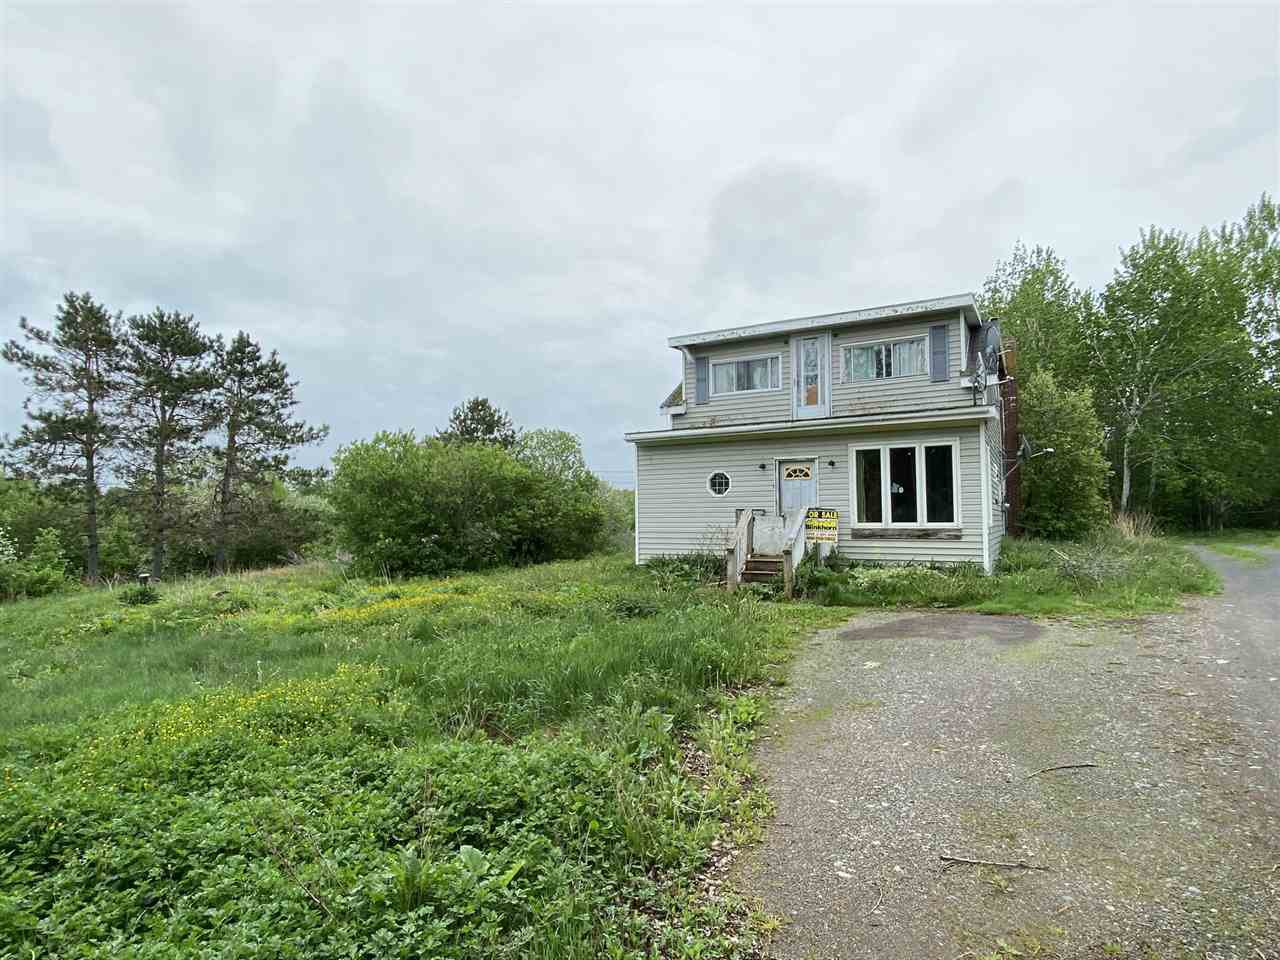 Main Photo: 22 Shady Lane in Merigomish: 108-Rural Pictou County Residential for sale (Northern Region)  : MLS®# 202001581